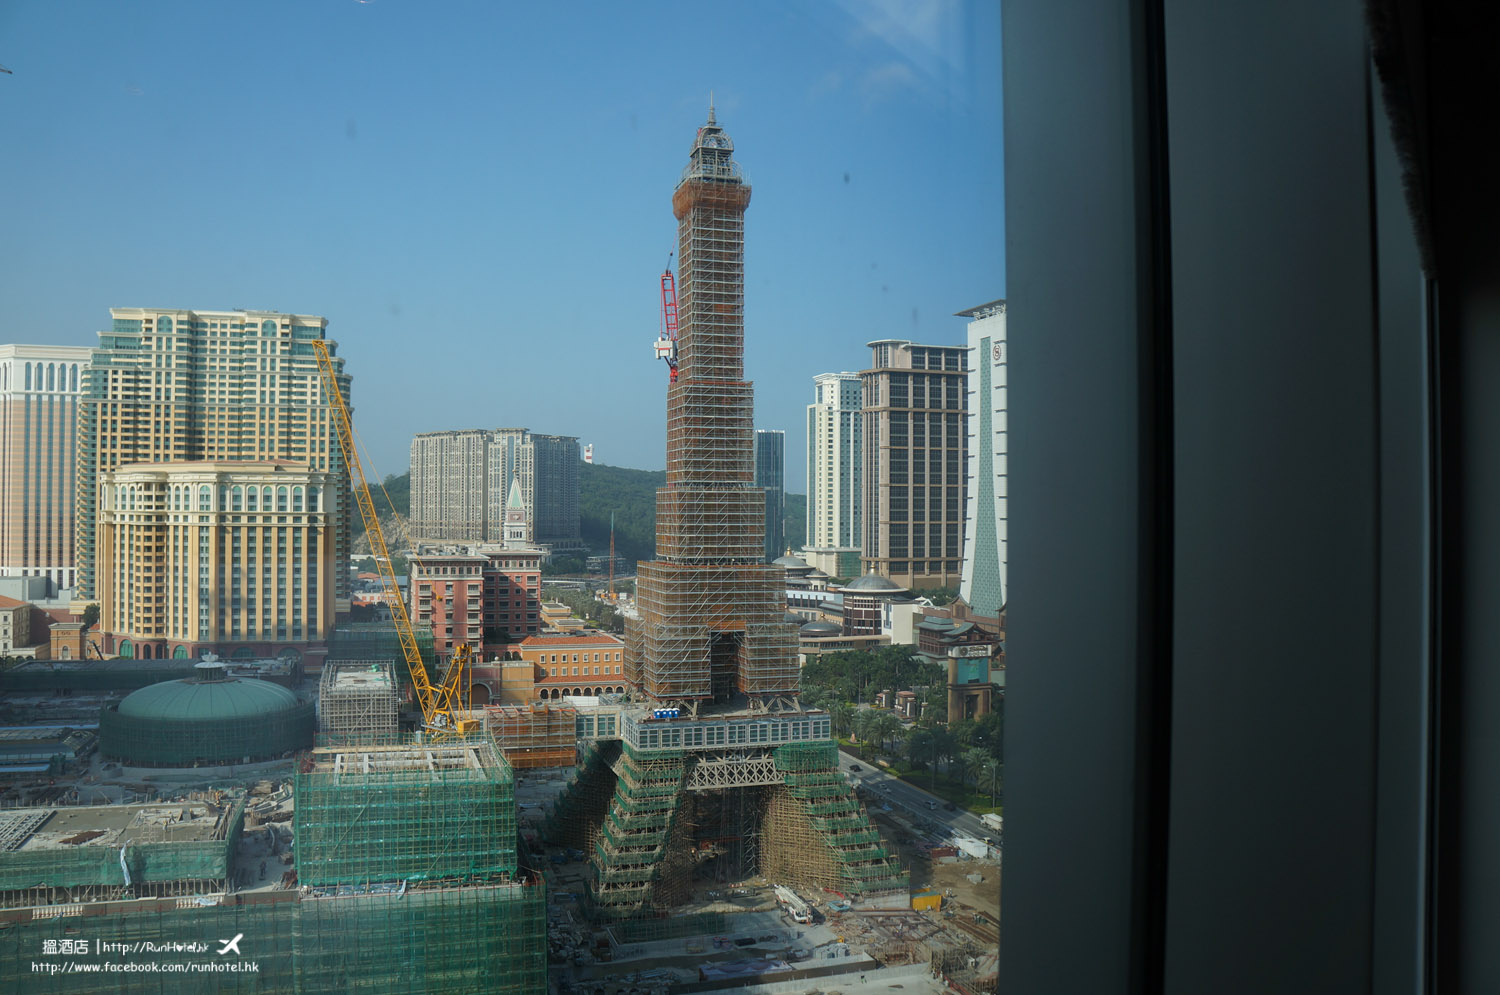 新濠影滙 Studio City Macau